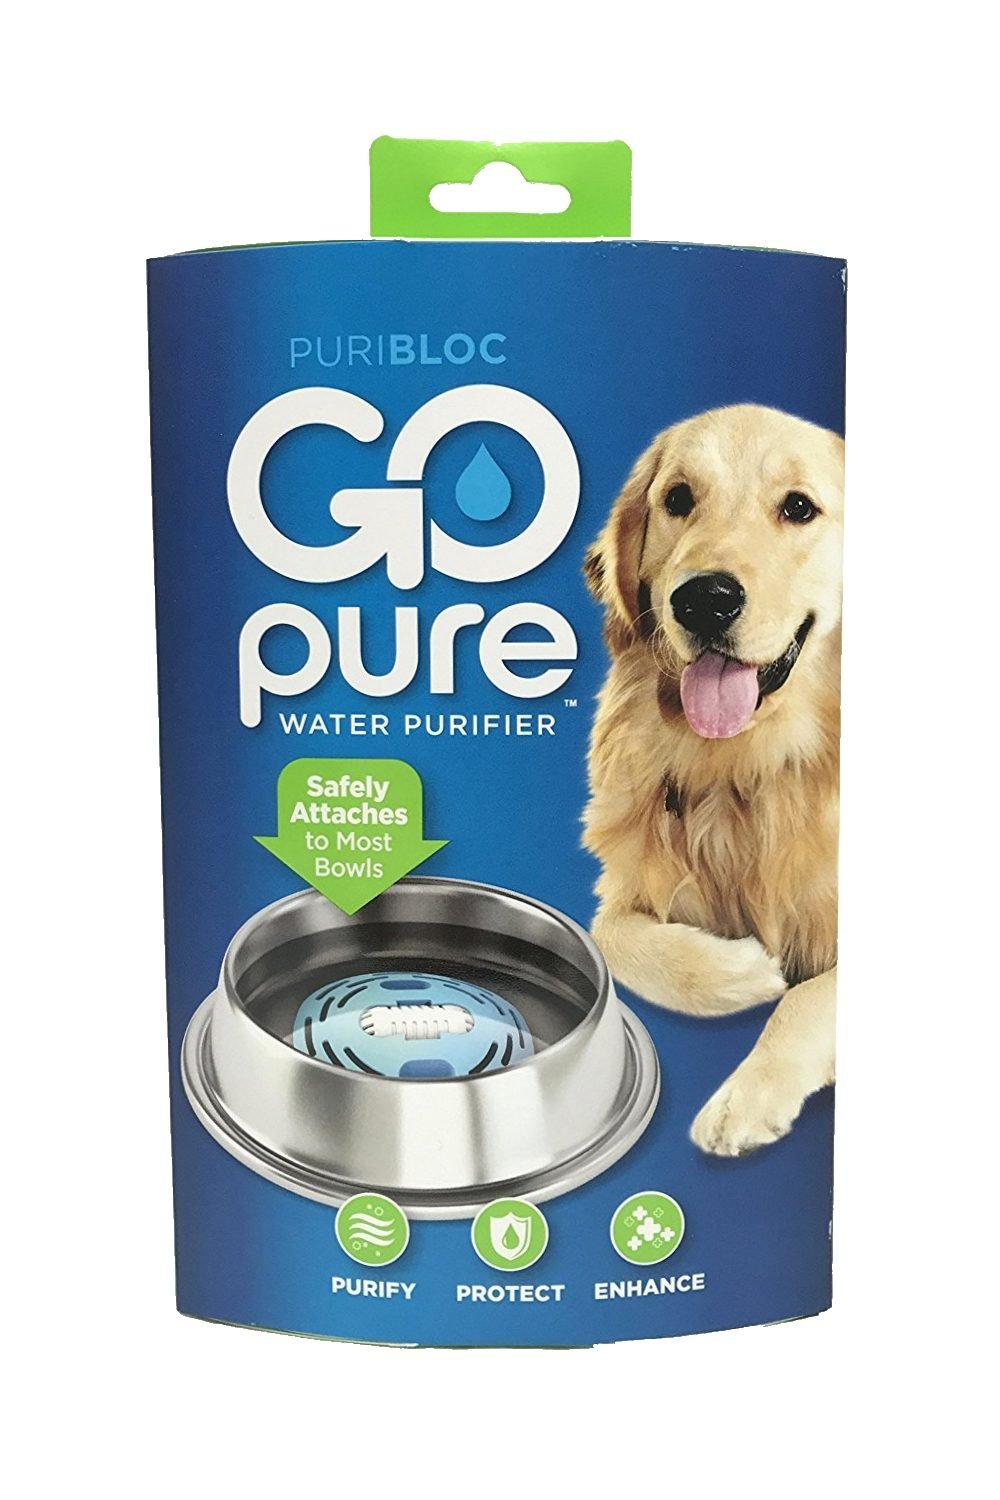 PuriBloc GoPure, Pet Water Purifier Pod by PURIBLOC GO PURE